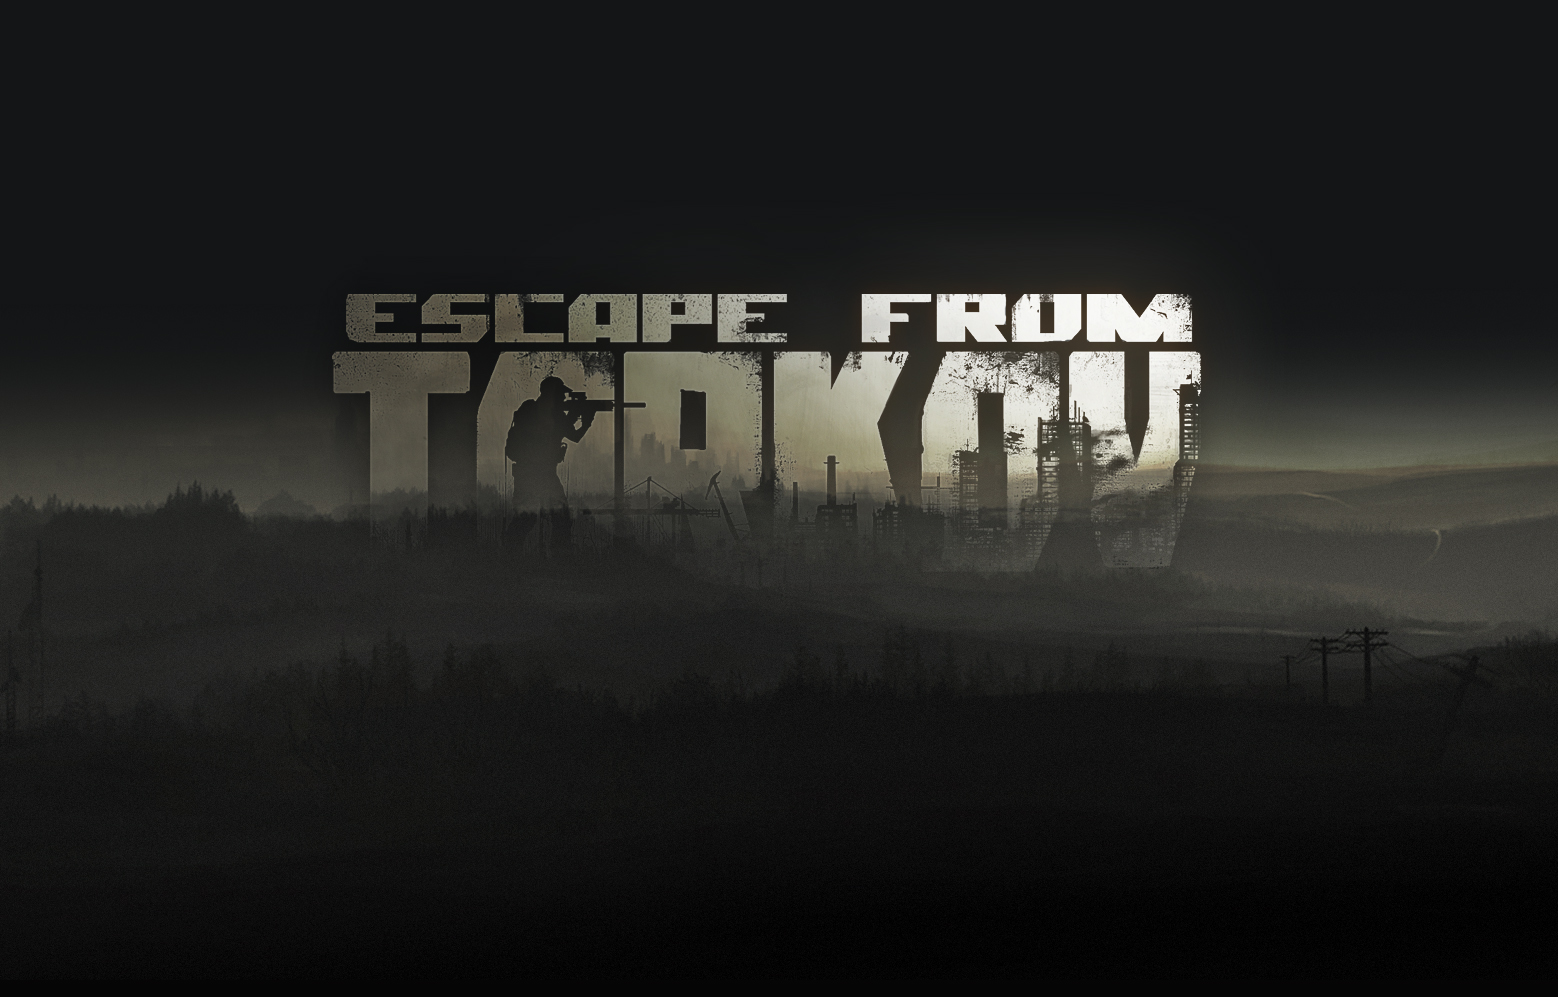 ESCAPE FROM TARKOV - (Video Game, in Beta)Developed by Battlestate Games, this tactical first person shooter features English VO, with Brent voicing multiple factions.